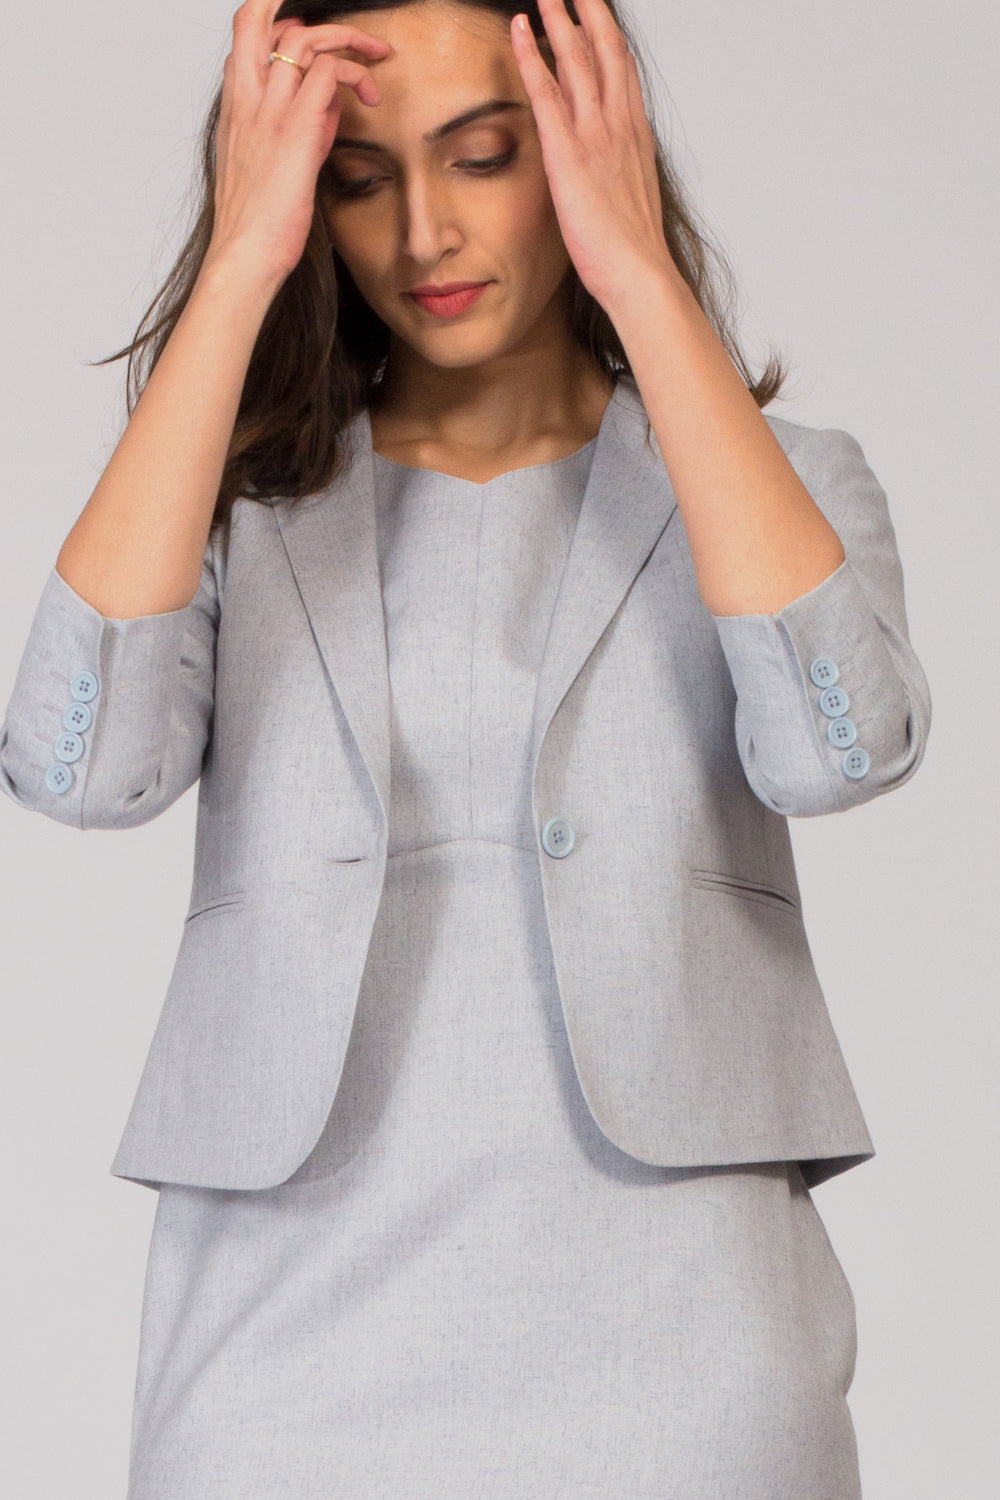 Light Blue Semi Formal Blazer Suit for work. Buy stylish office formal pant-suits, formal dresses, skirts and formal trousers and other professional looks online at www.intermod.in